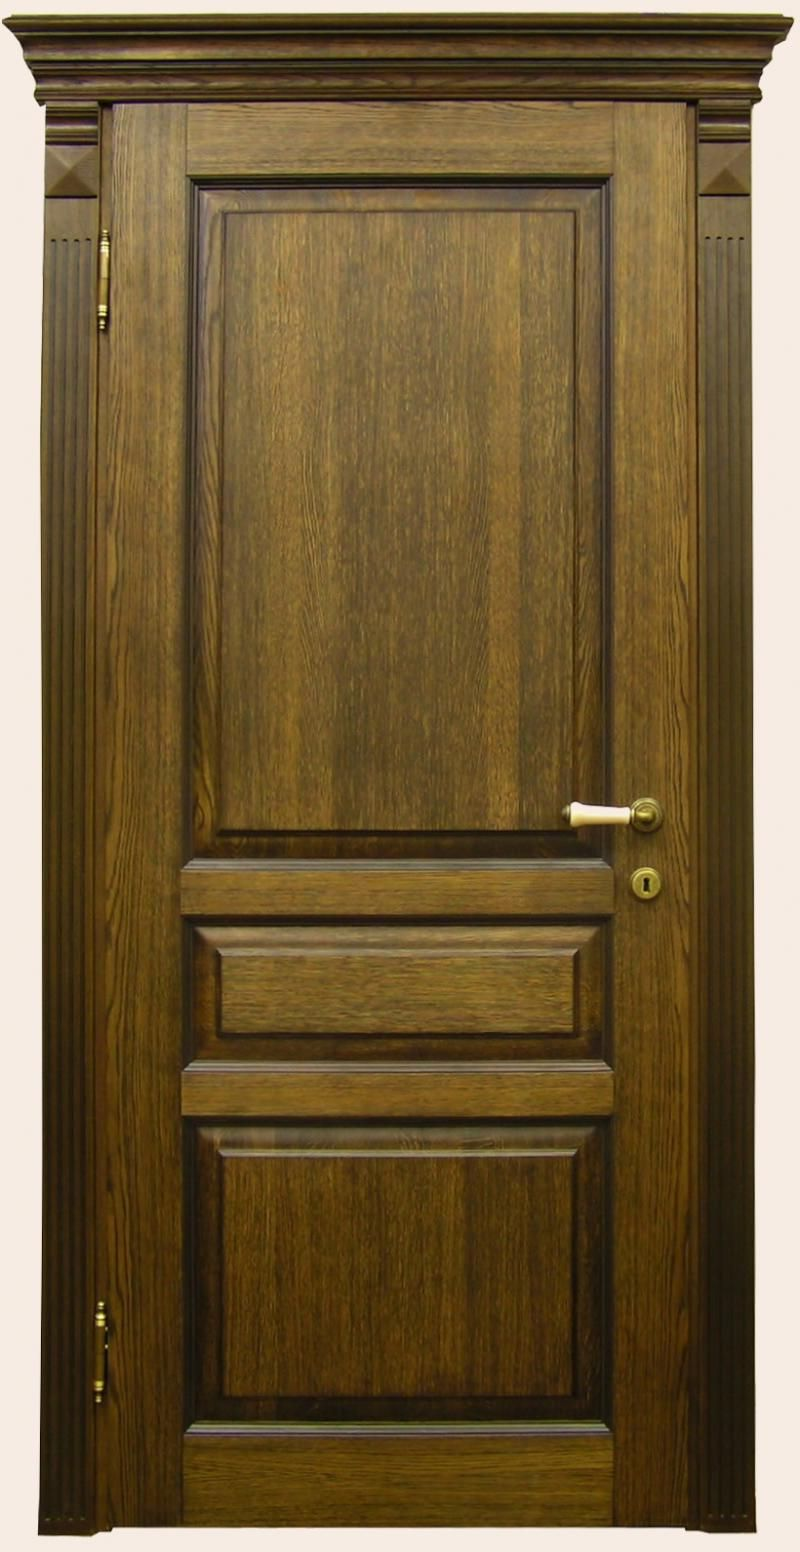 Doors of solid oak